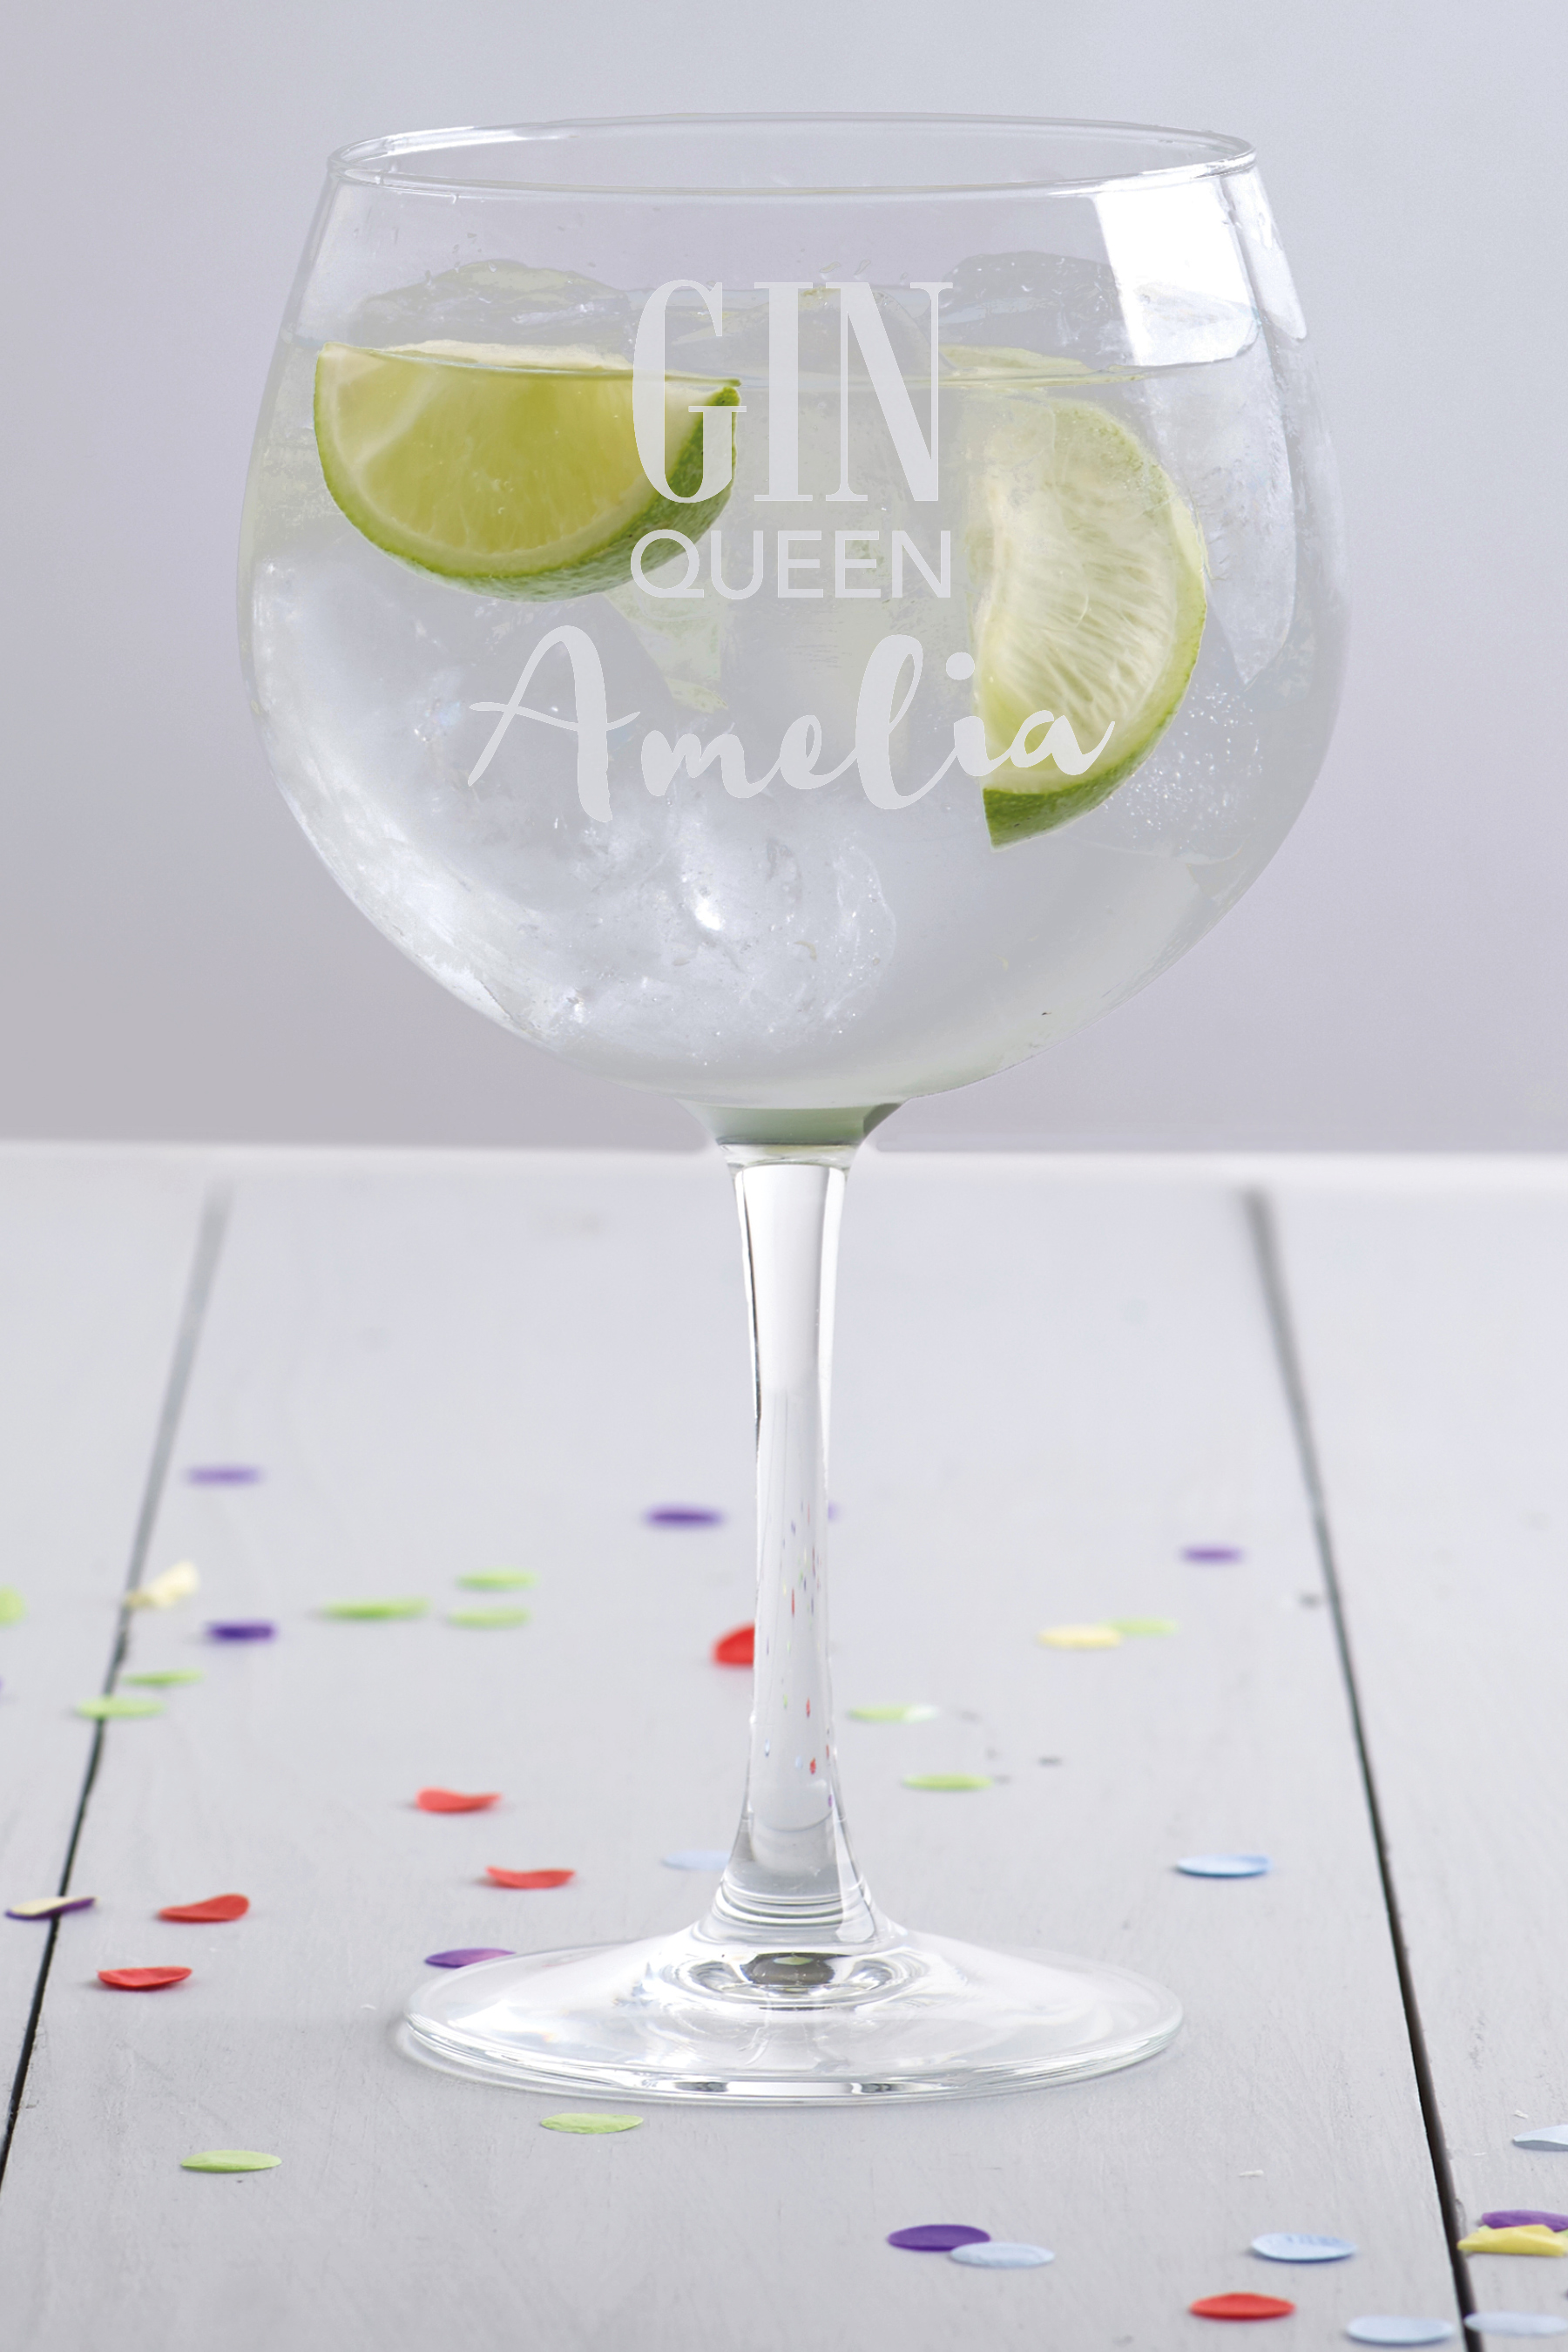 Gin Queen Gin Glass